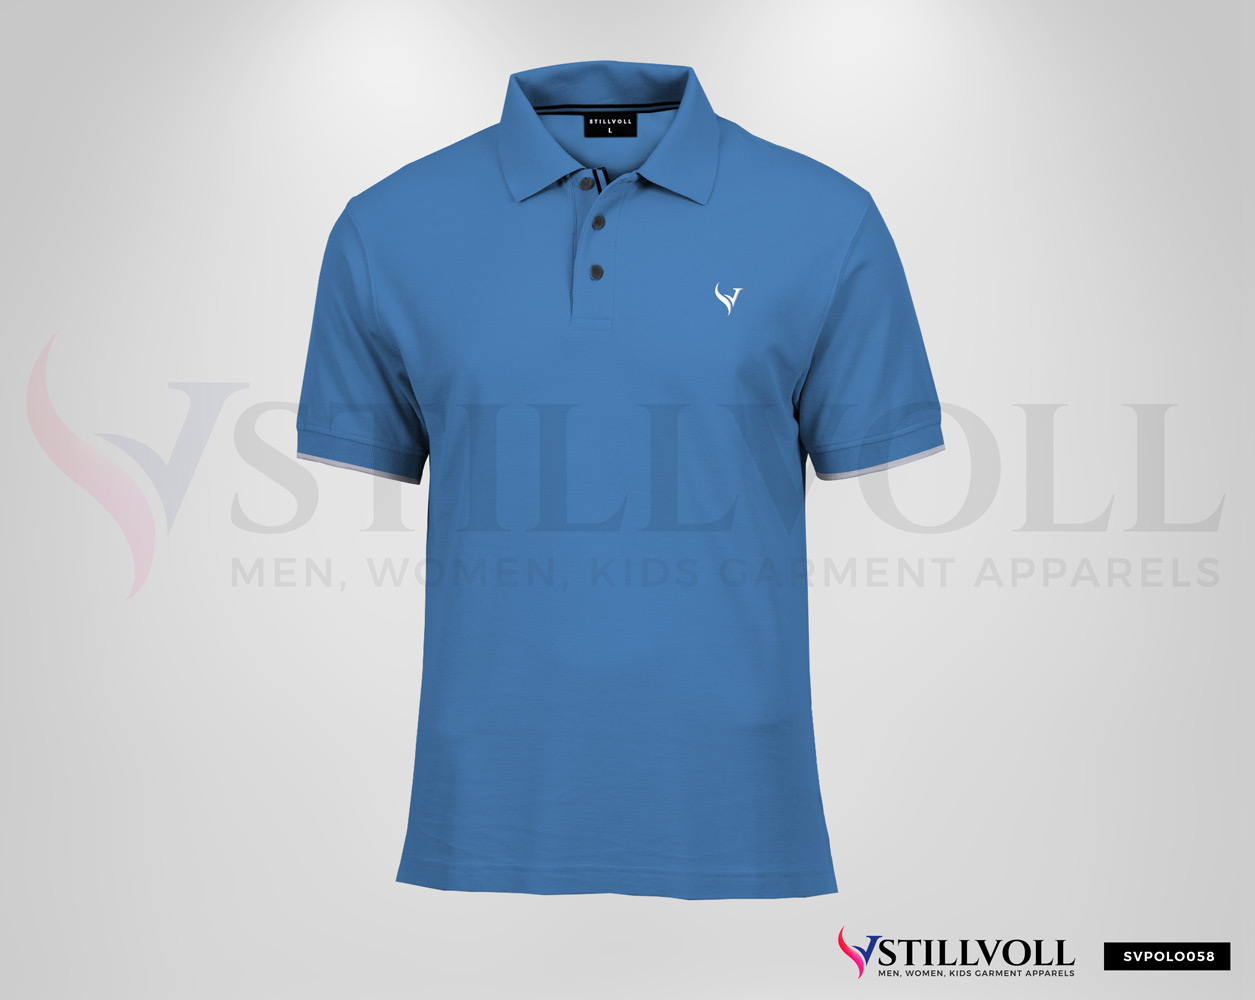 34ac1c47f polo t shirt manufacturer in tirupur. REQUEST A QUOTE. CONTACT US · VIEW ALL